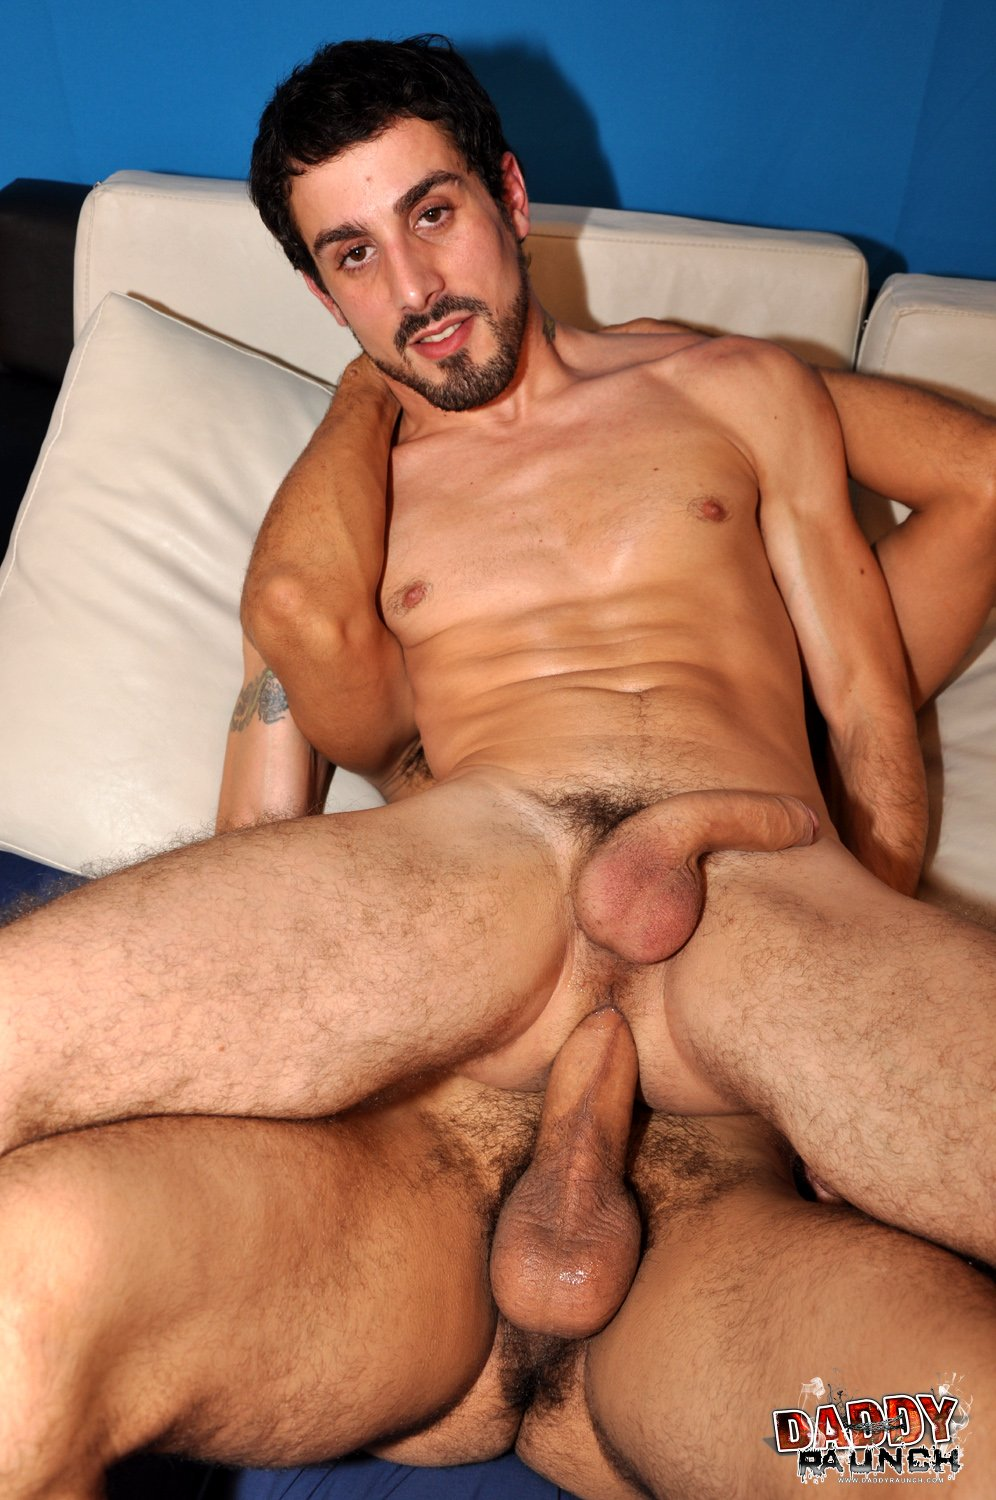 Arab Men Big Cocks 11 Pics Xhamstercom